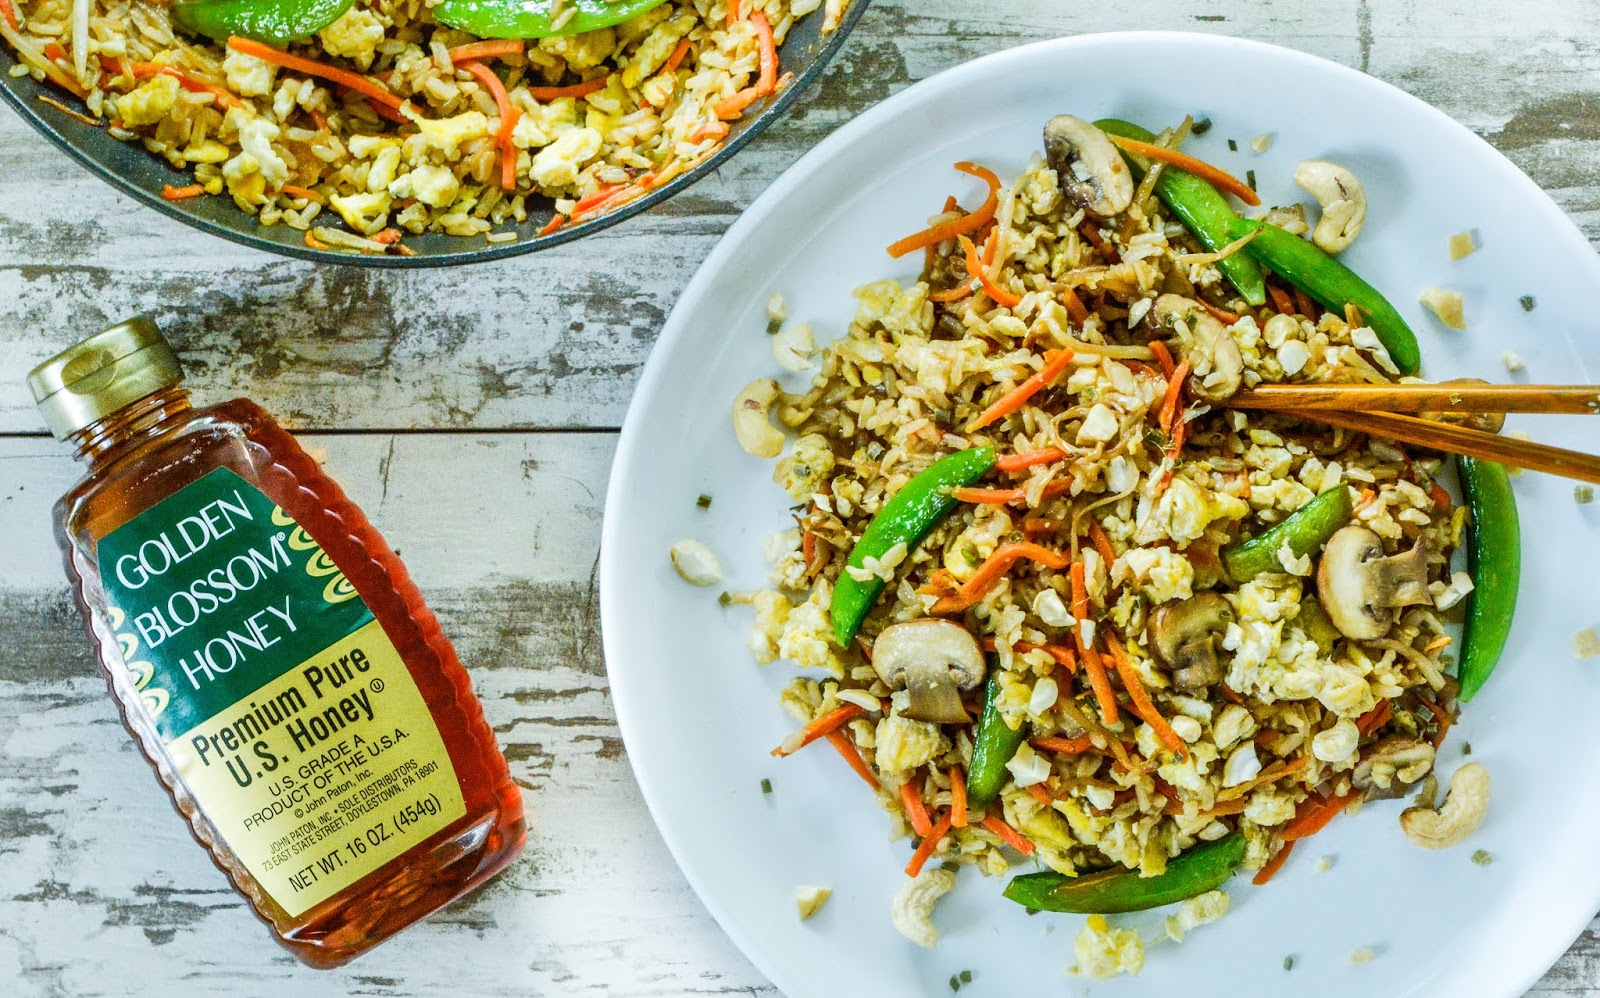 Vegetable Stir Fried Rice